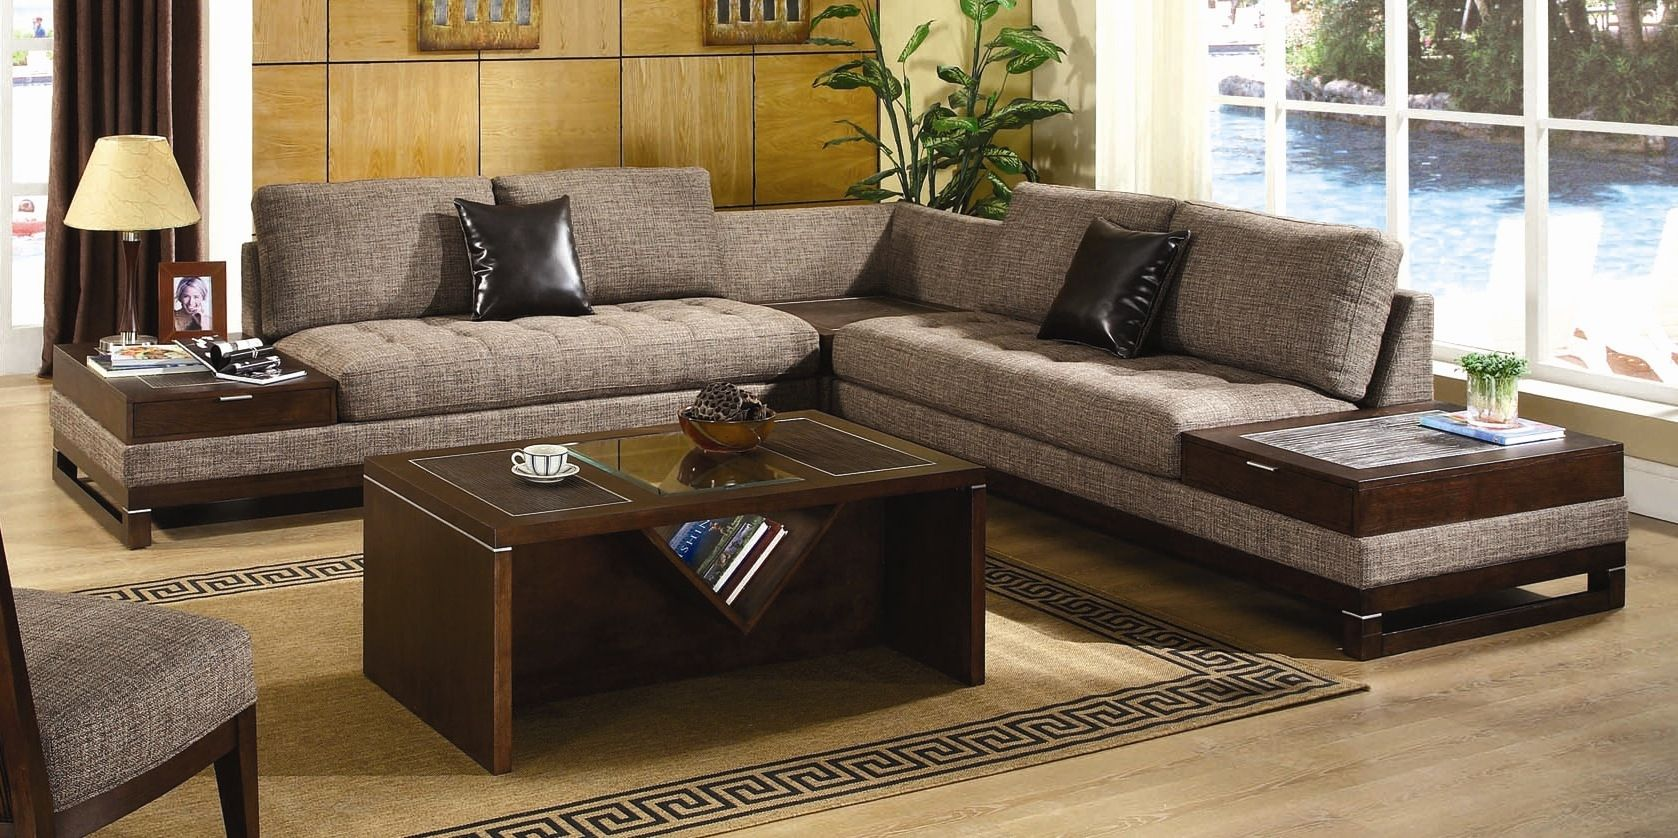 Cheap living room furniture sets under 500 top rated interior paint